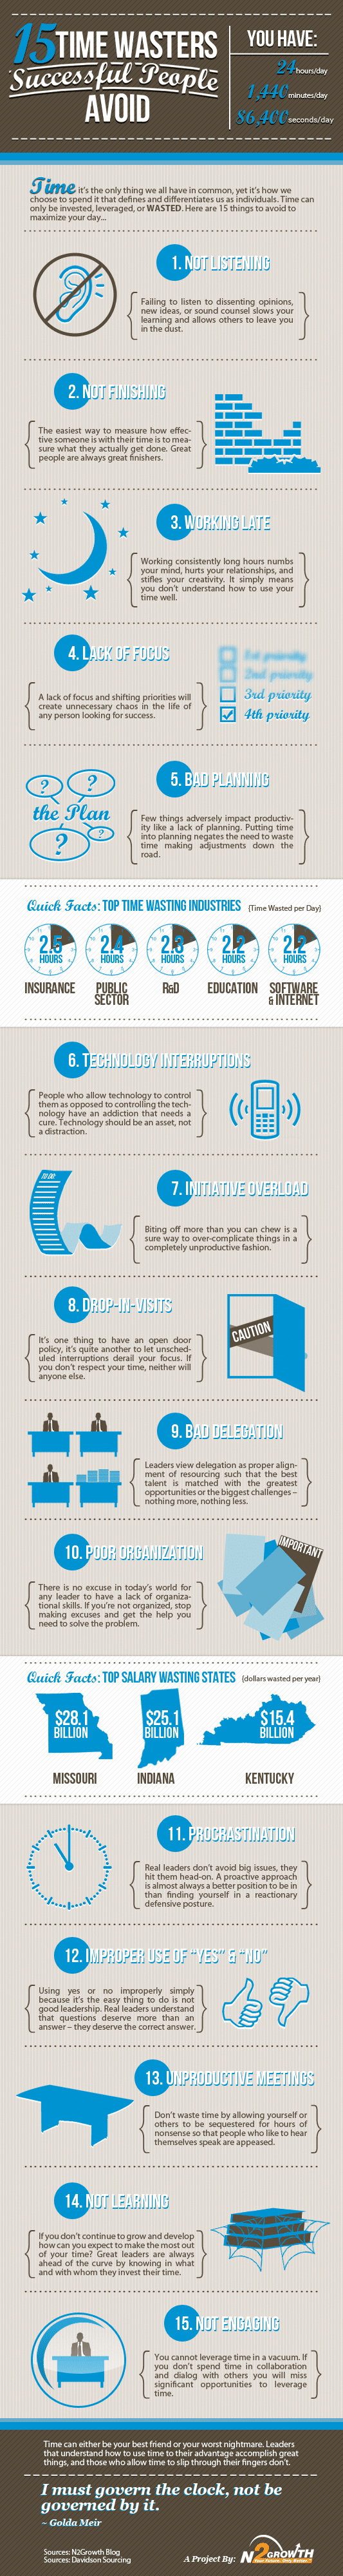 15 Time Wasters Successful People Avoid [Infographic]